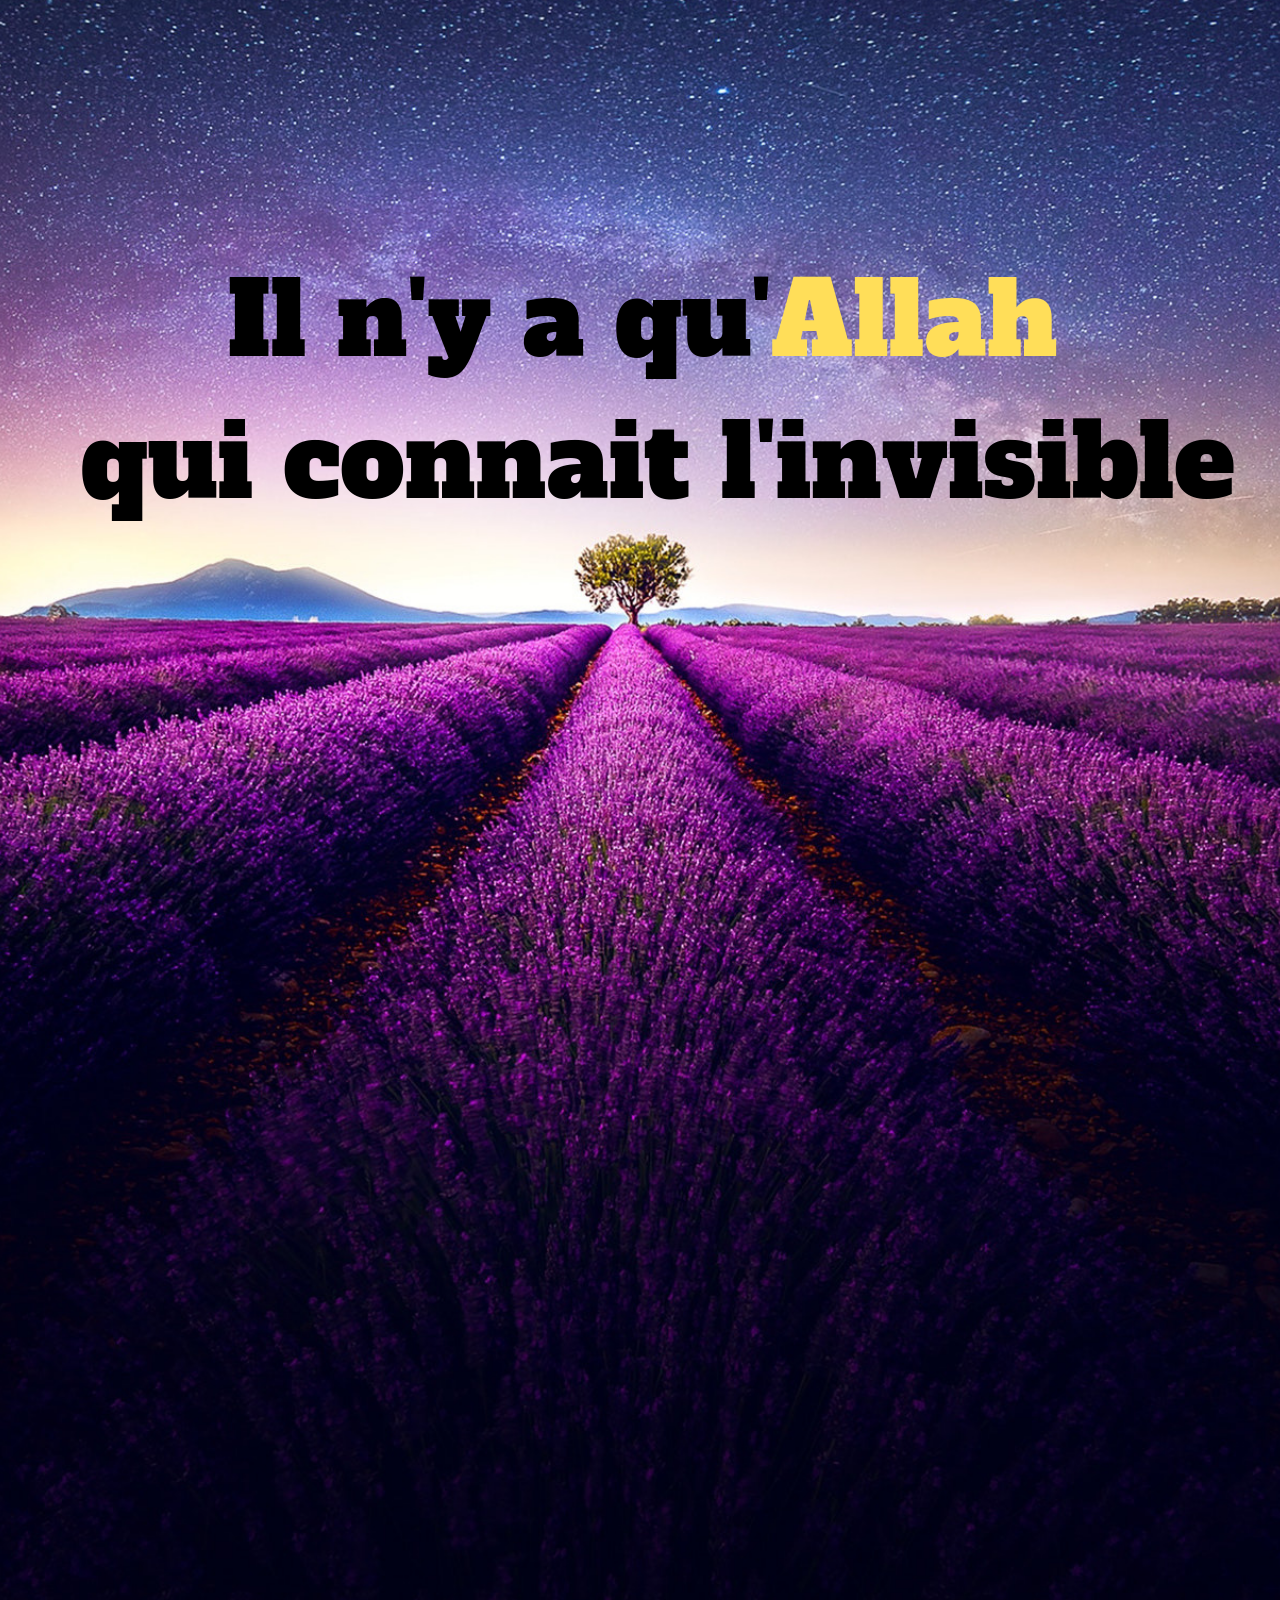 Il n'y a qu'Allah qui connait l'invisible